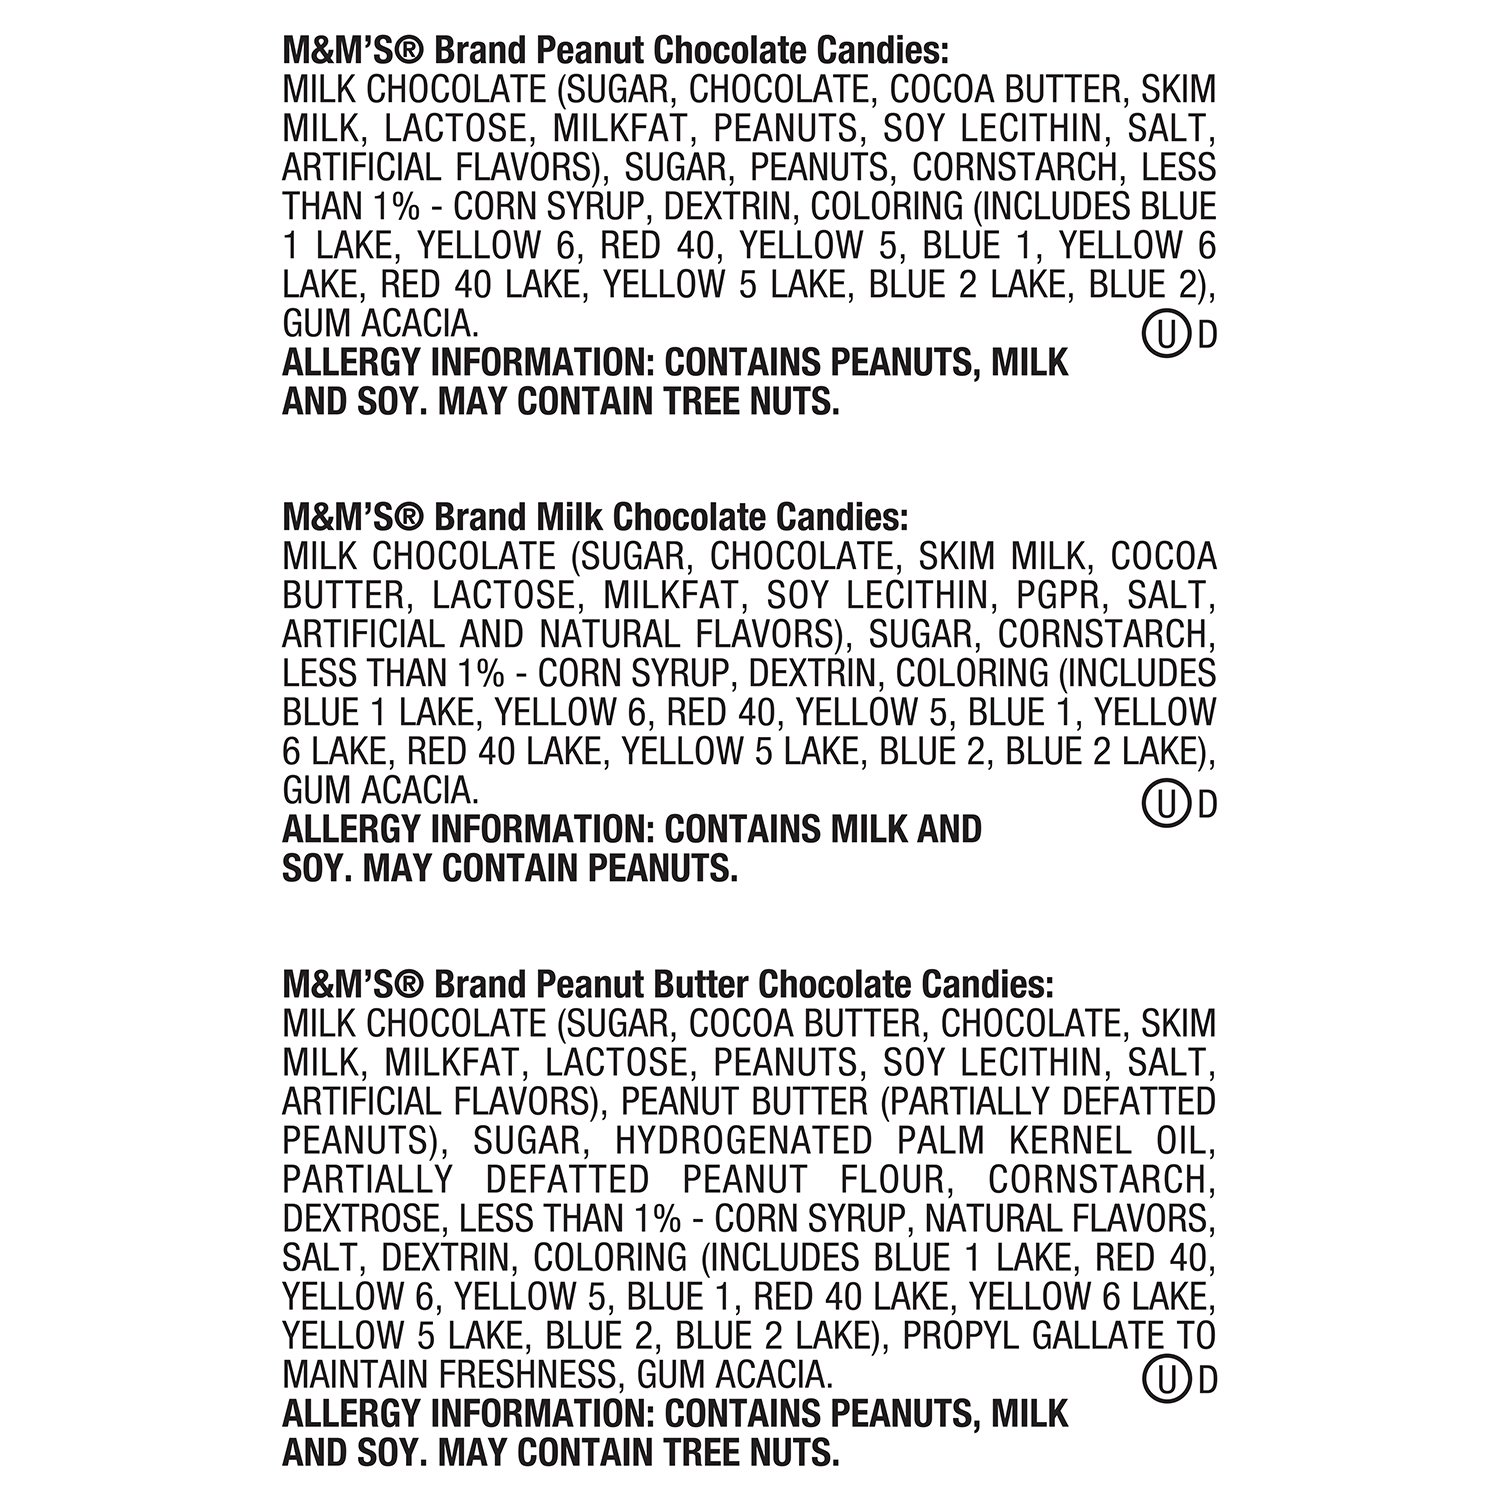 Amazon.com : M&M'S Variety Pack Chocolate Candy Singles Size 30.58 ...